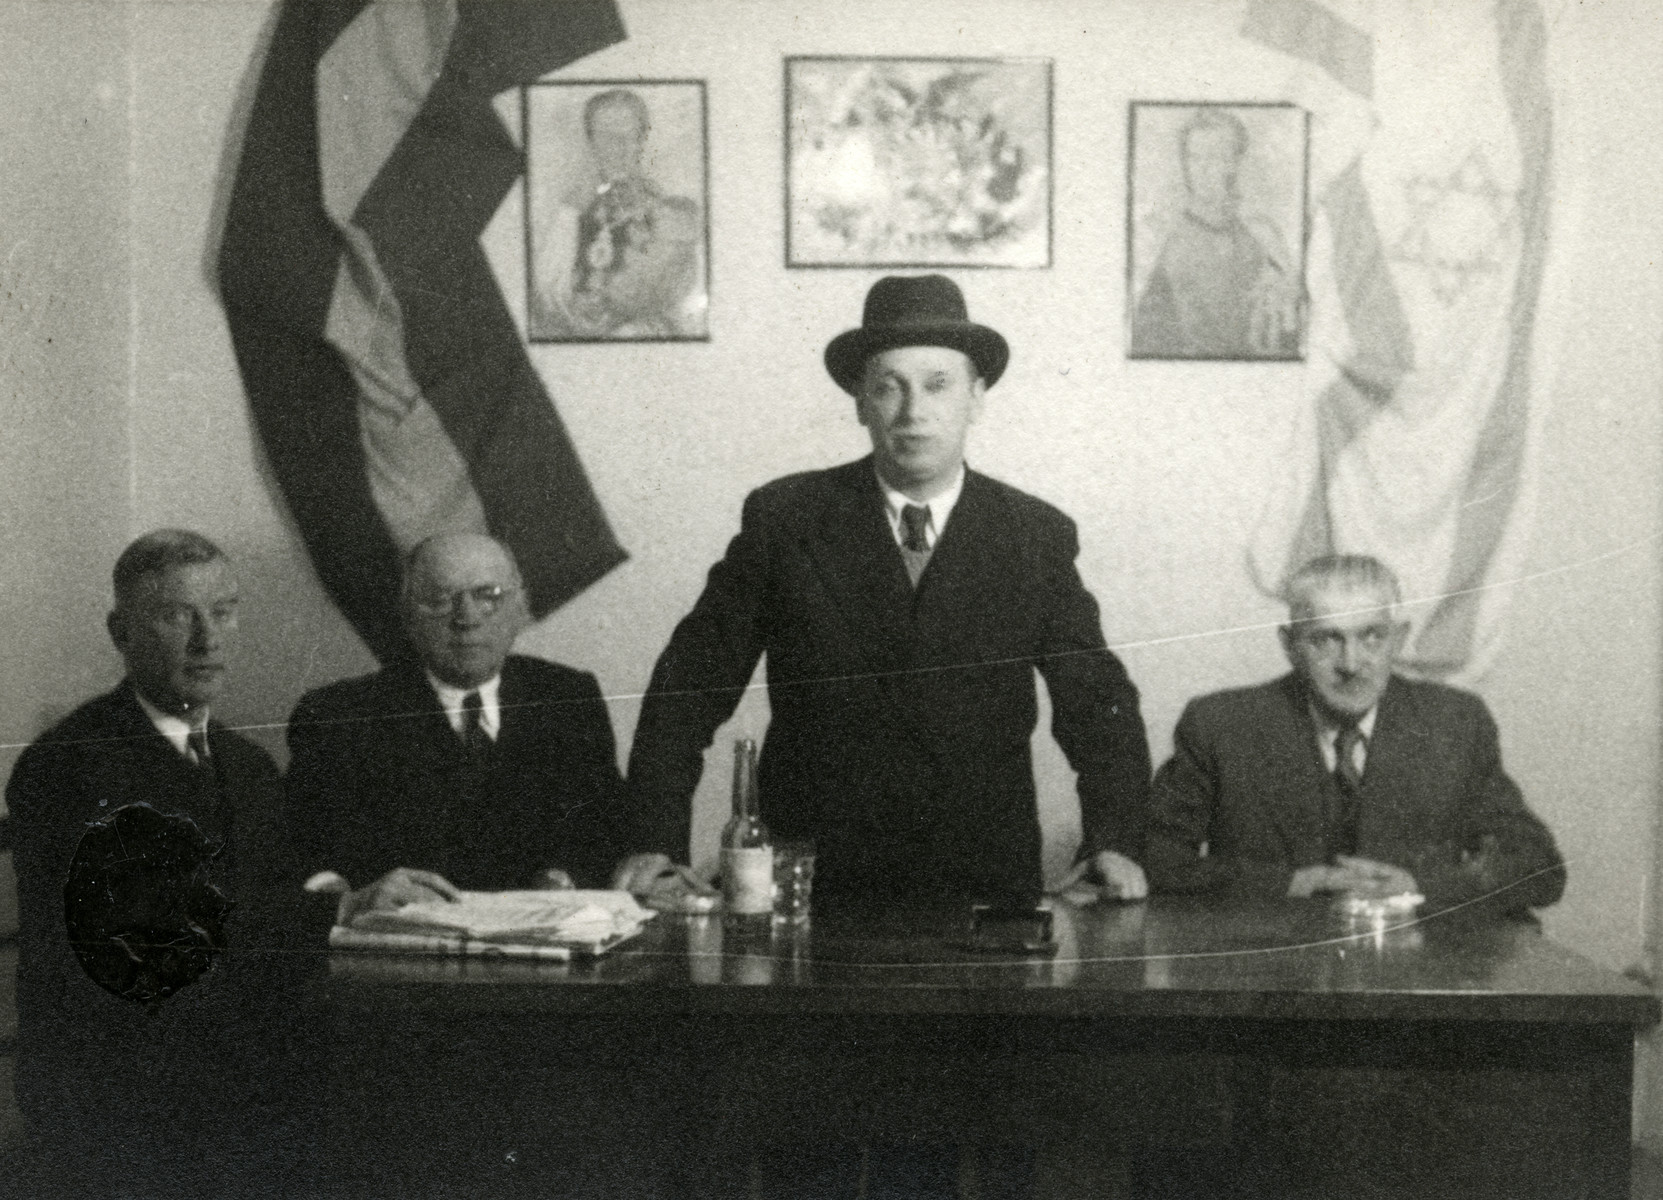 Rabbi Israel Wagner (the donor's husband) officiates in La Paz, Bolivia.